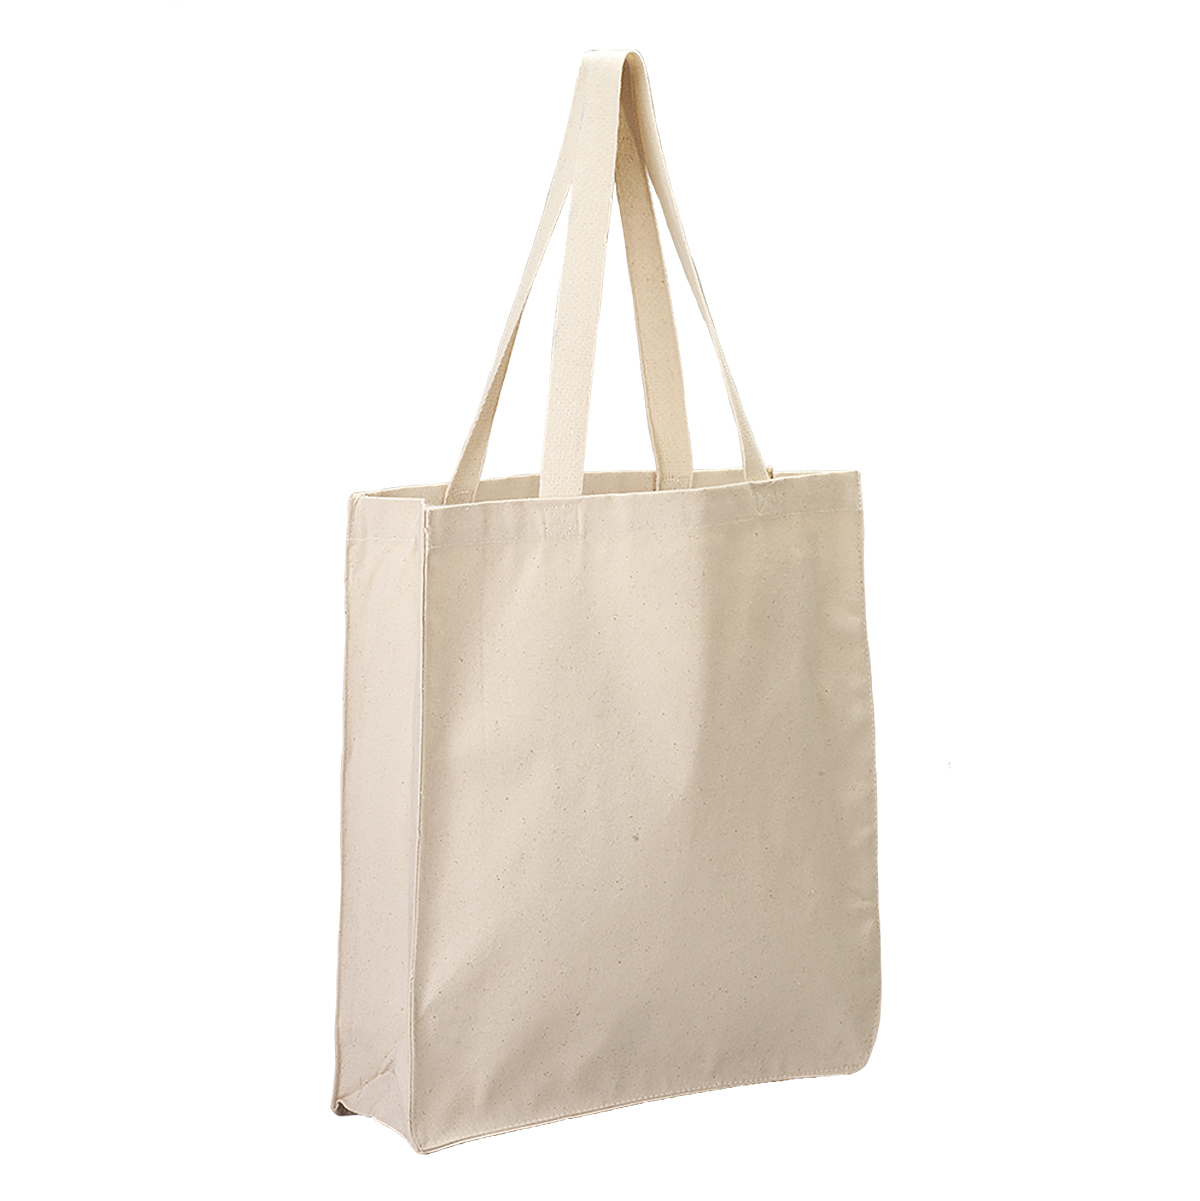 db25f0e40 'A picture of a Canvas Tote Bag, ready to be custom printed!